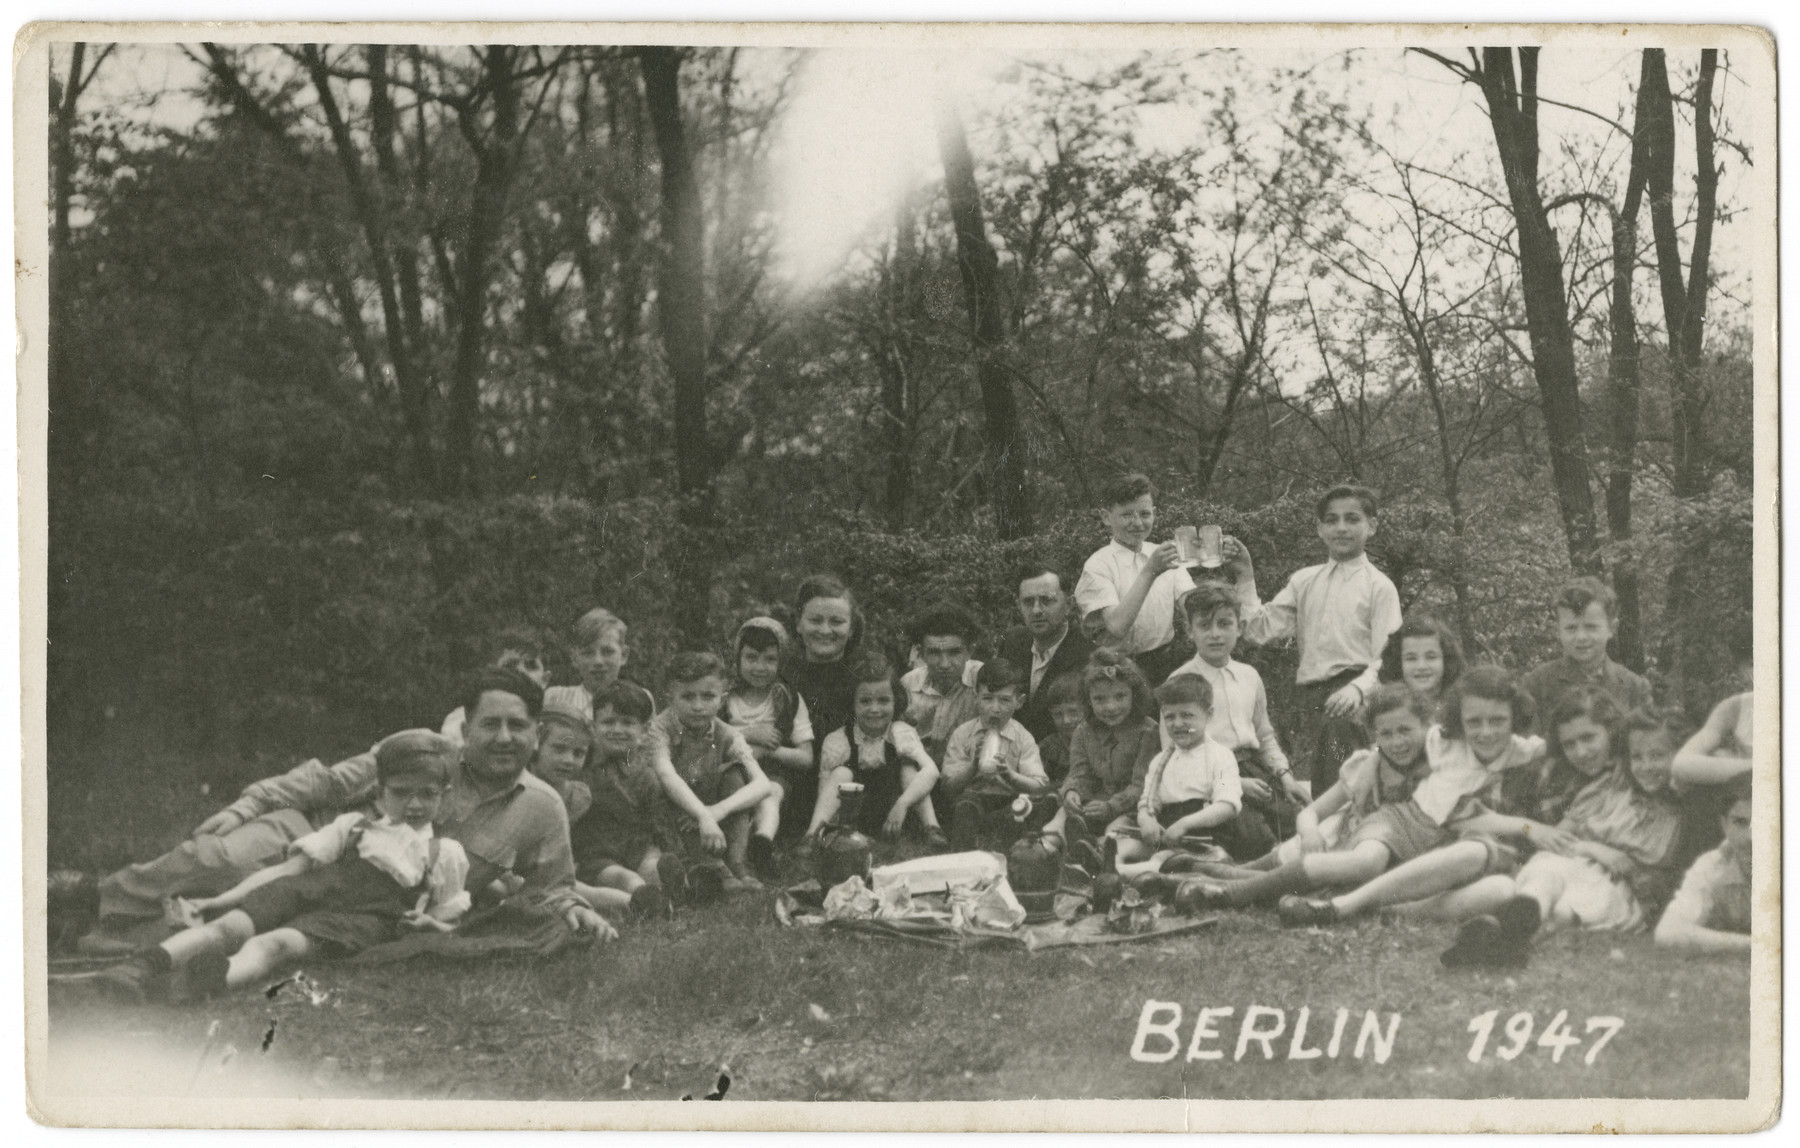 Group portrait of Jewish children and teachers from the Schlachtensee displaced persons camp on an outing to a park.  Nathan Rubinstein is in the back holding a mug.